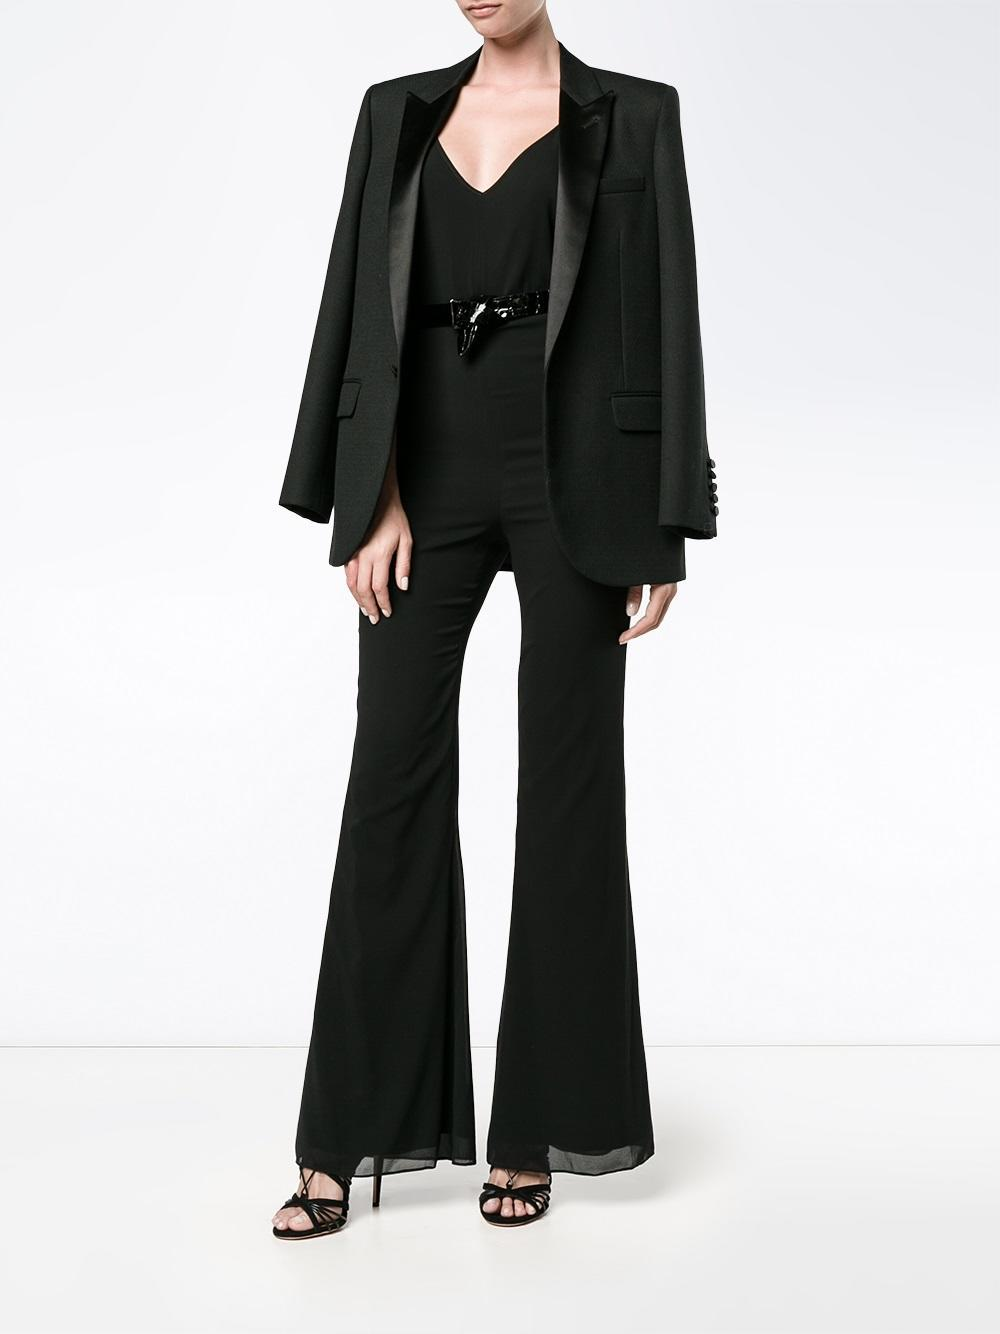 787515284f8 Haney Gloria Fitted Jumpsuit in Black - Lyst